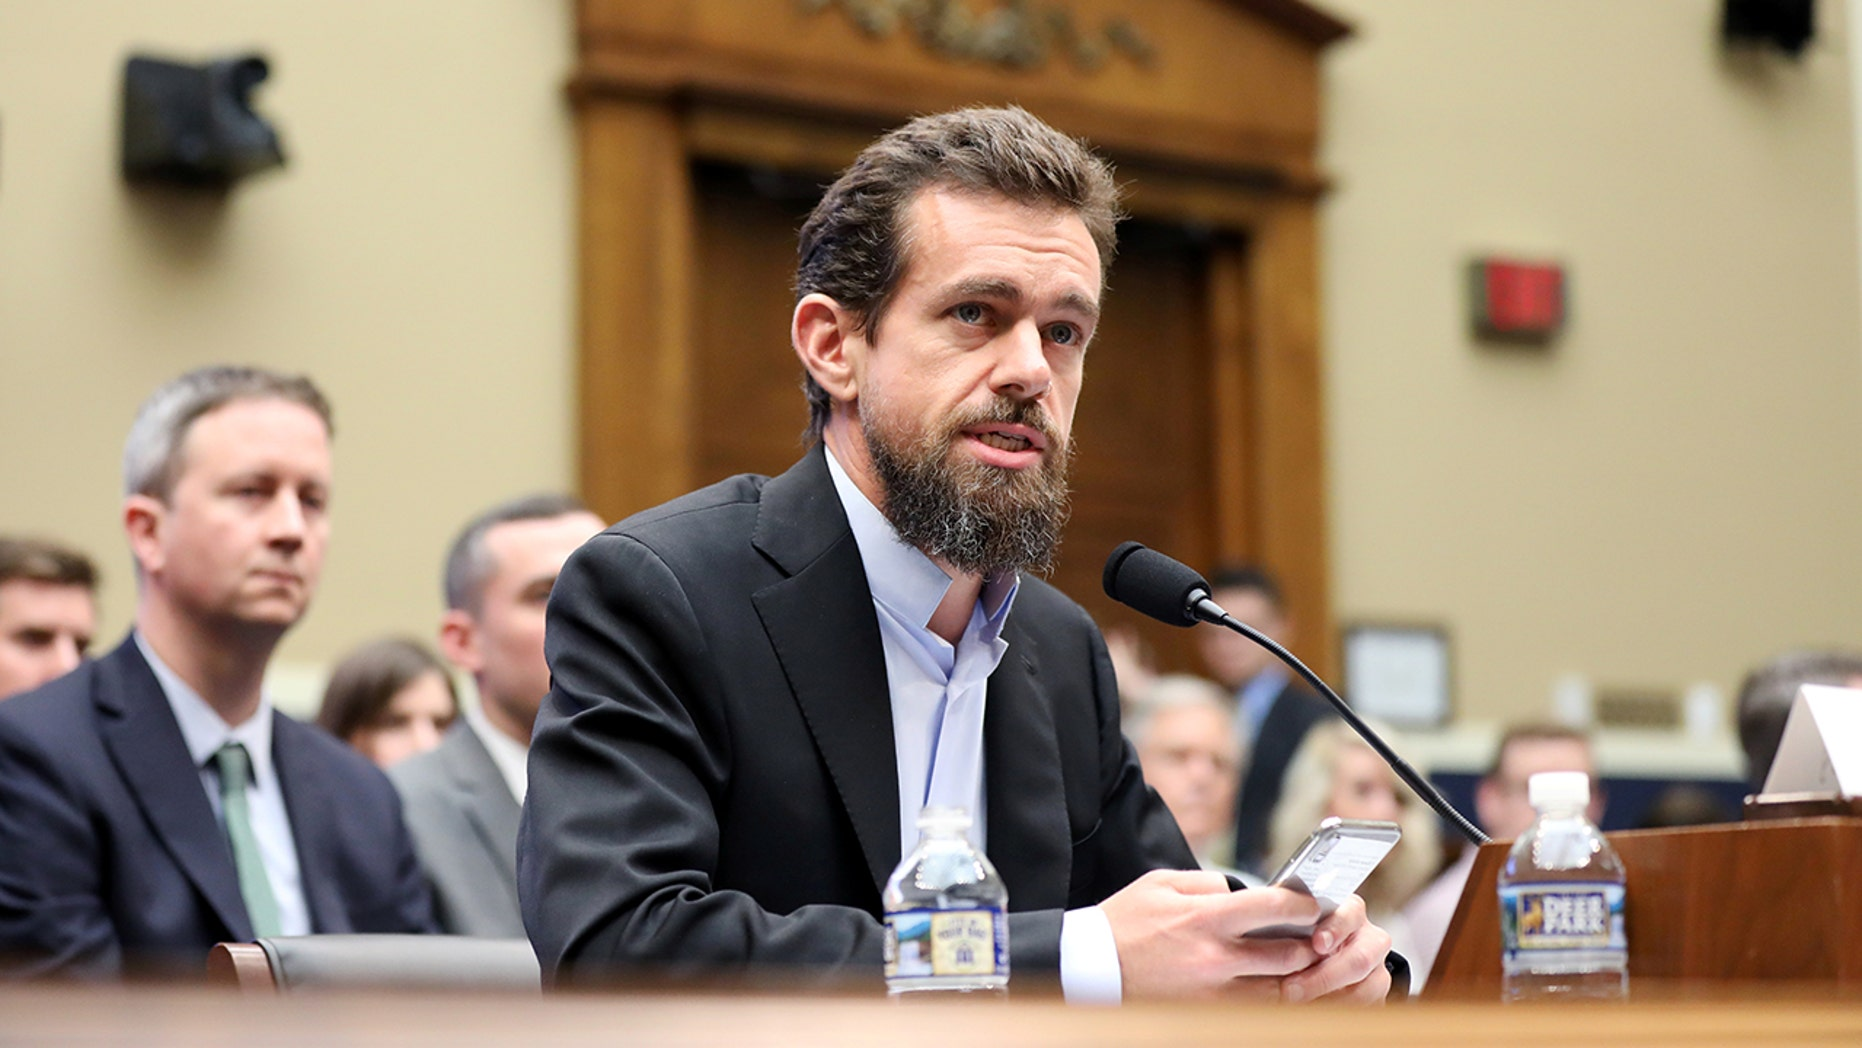 Twitter co-founder Jack Dorsey holding a phone during a Sept. 5 appearance on Capitol Hill.